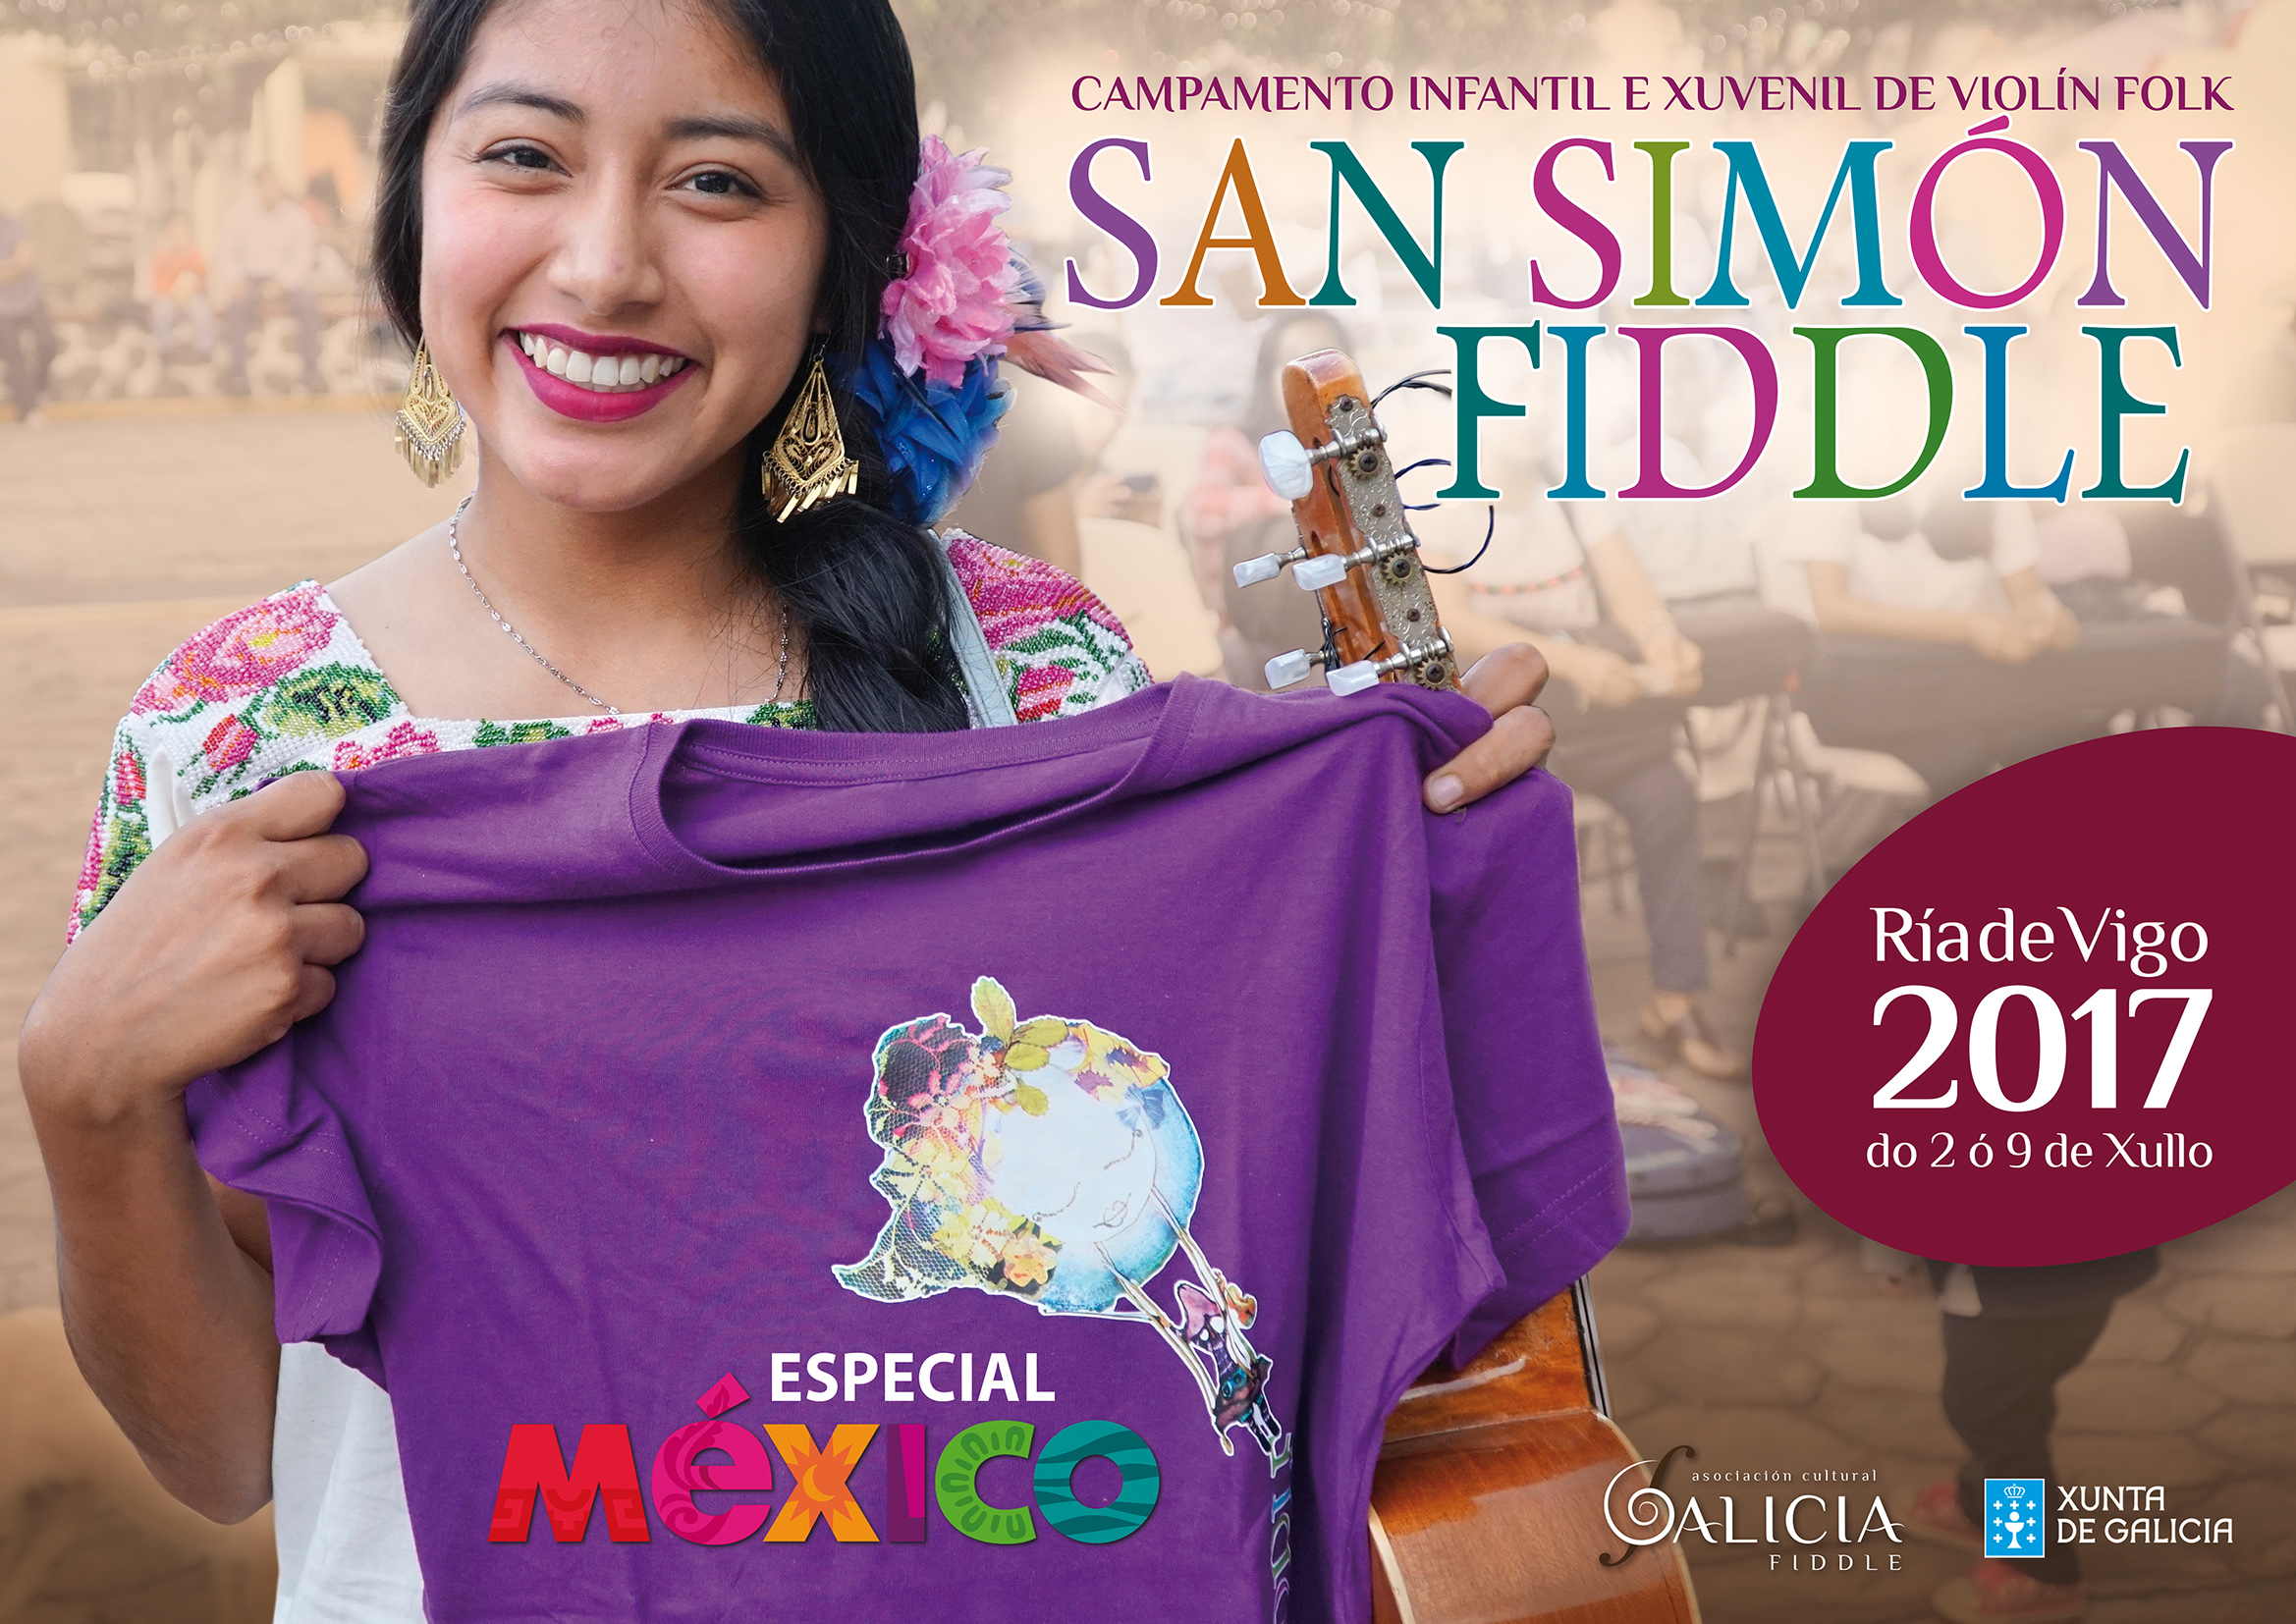 San Simon Fiddle 2017